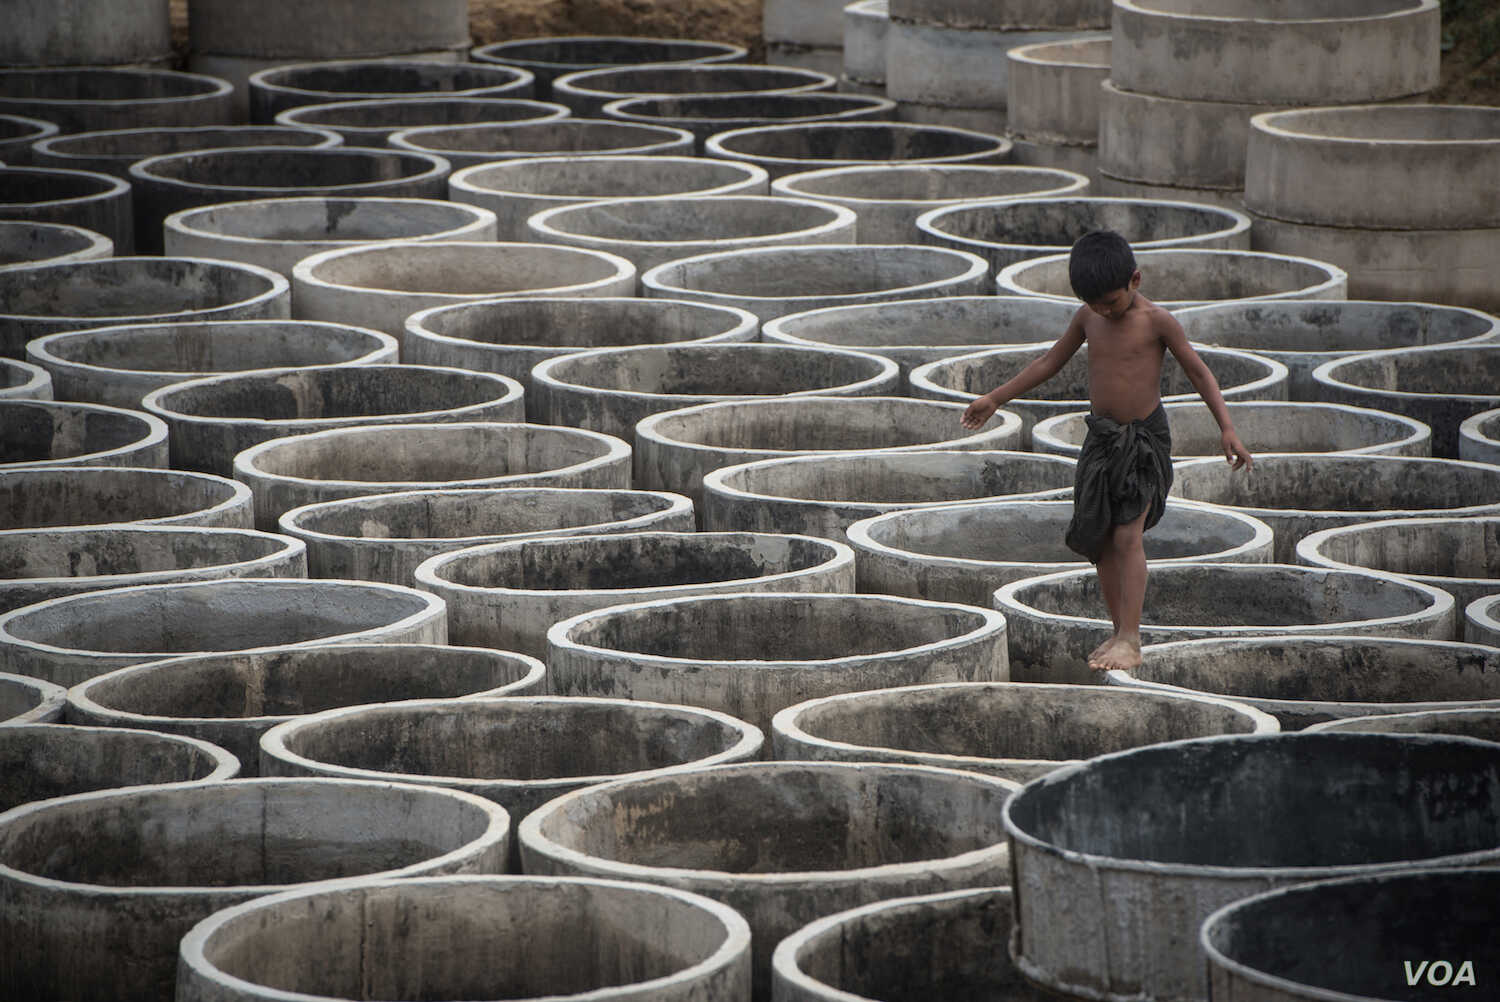 A Rohingya refugee child walks among concrete rings to be used for drainage in preparation for the annual rainy season in Bangladesh refugee camps.